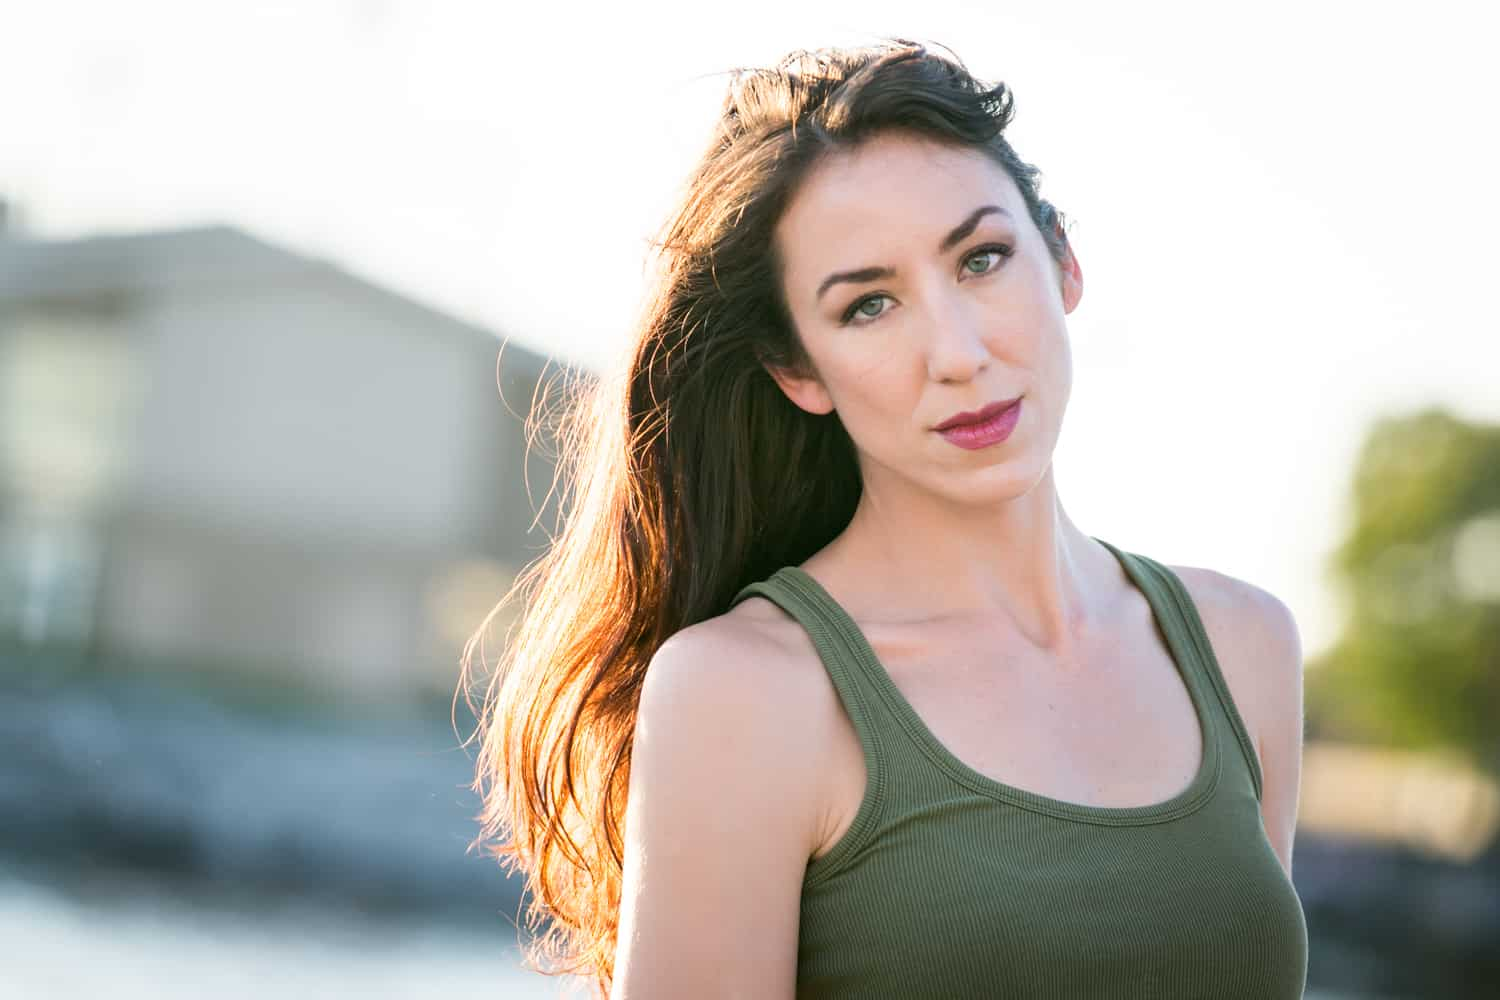 Acting headshot of model with long dark hair and olive tank top